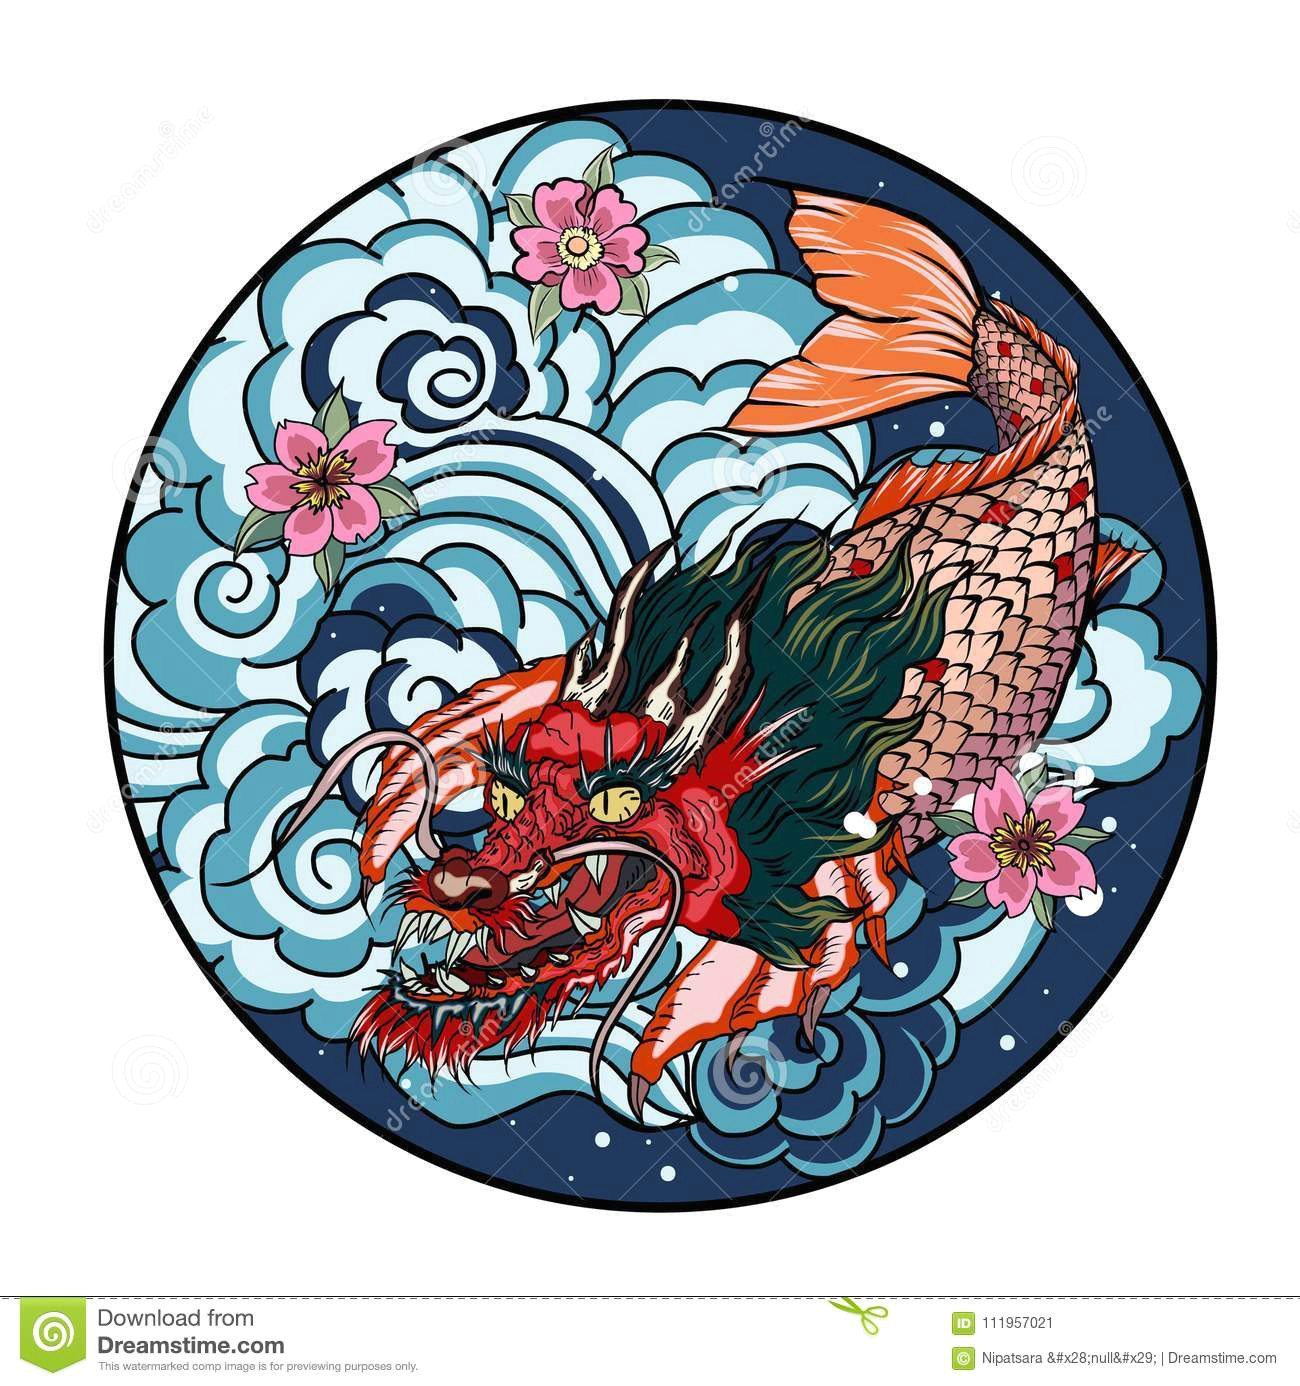 tattoo design koi dragon with cherry blossom and wave in circle koi fish in water circle with sakura flower japanese dragon carp line drawing coloring book